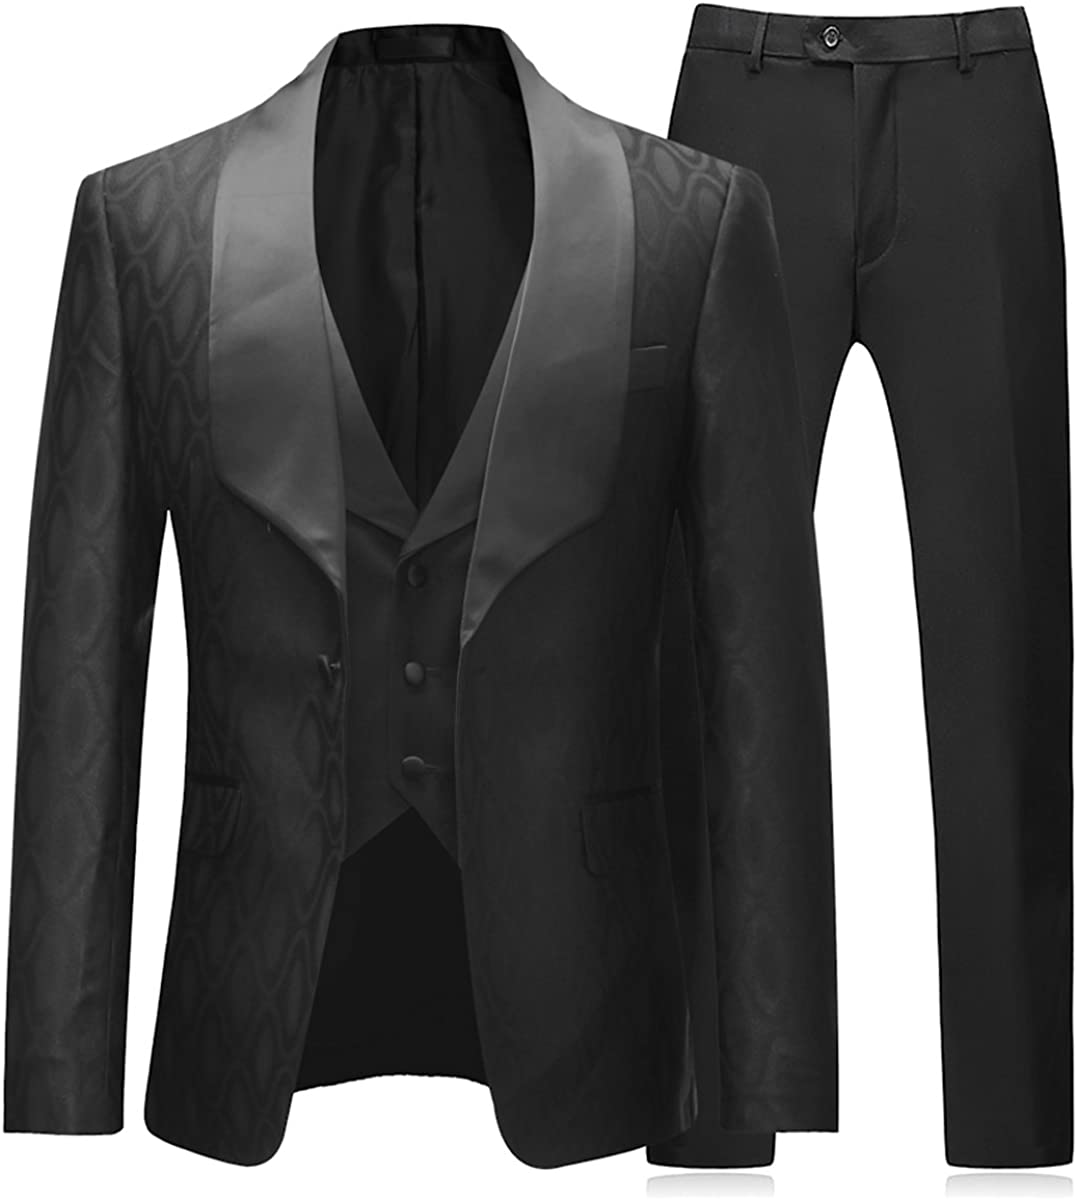 Boyland Mens 3 Pieces Max 86% OFF Gifts Tuxedos One Dre Wedding Shawl Lapel Button